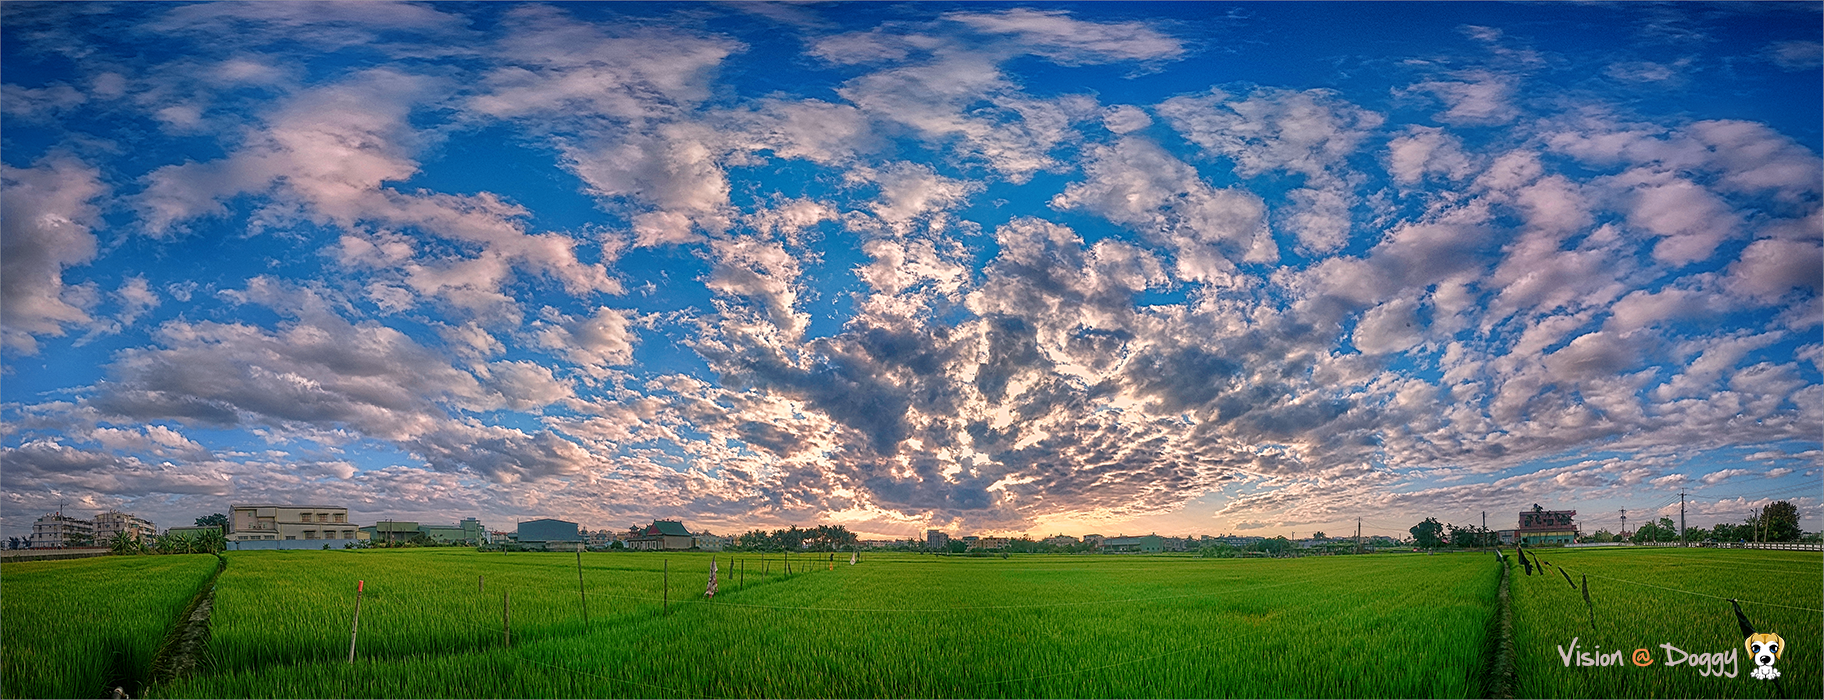 http://gnl.hunternet.com.tw/weider/web/wp-content/gallery/keliao/pic-20180410-01-sunset.png